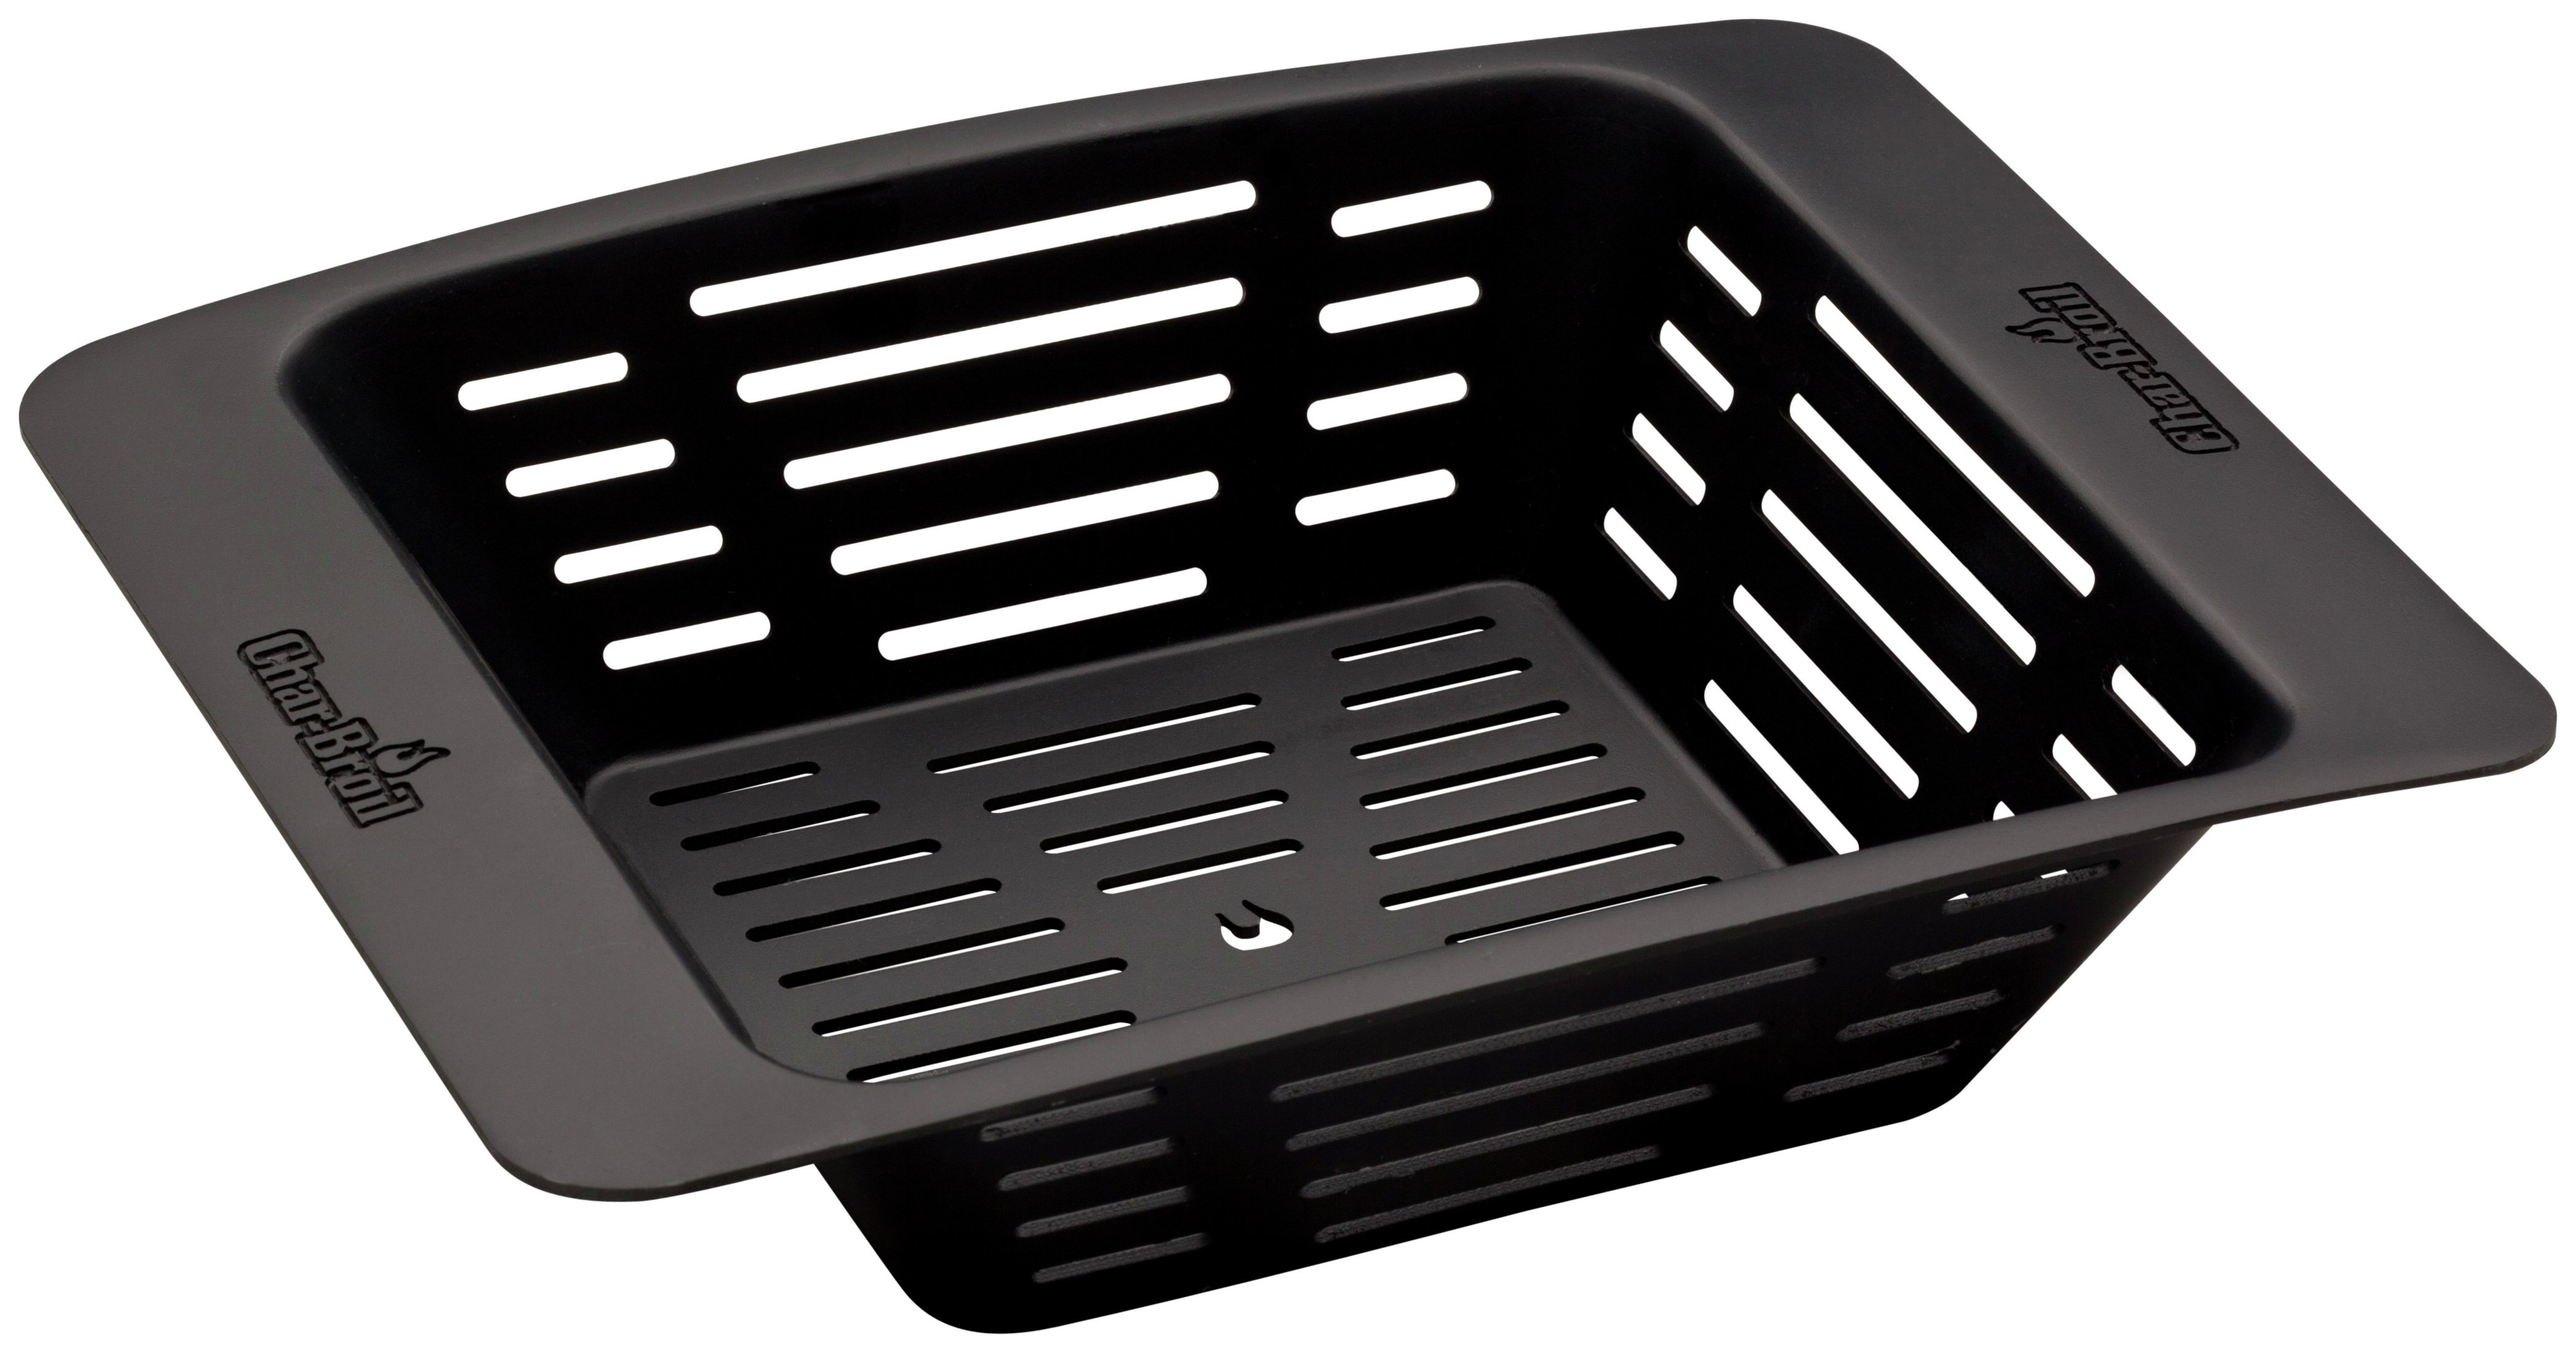 Char-Broil - Non Stick Grill Pan lowest price